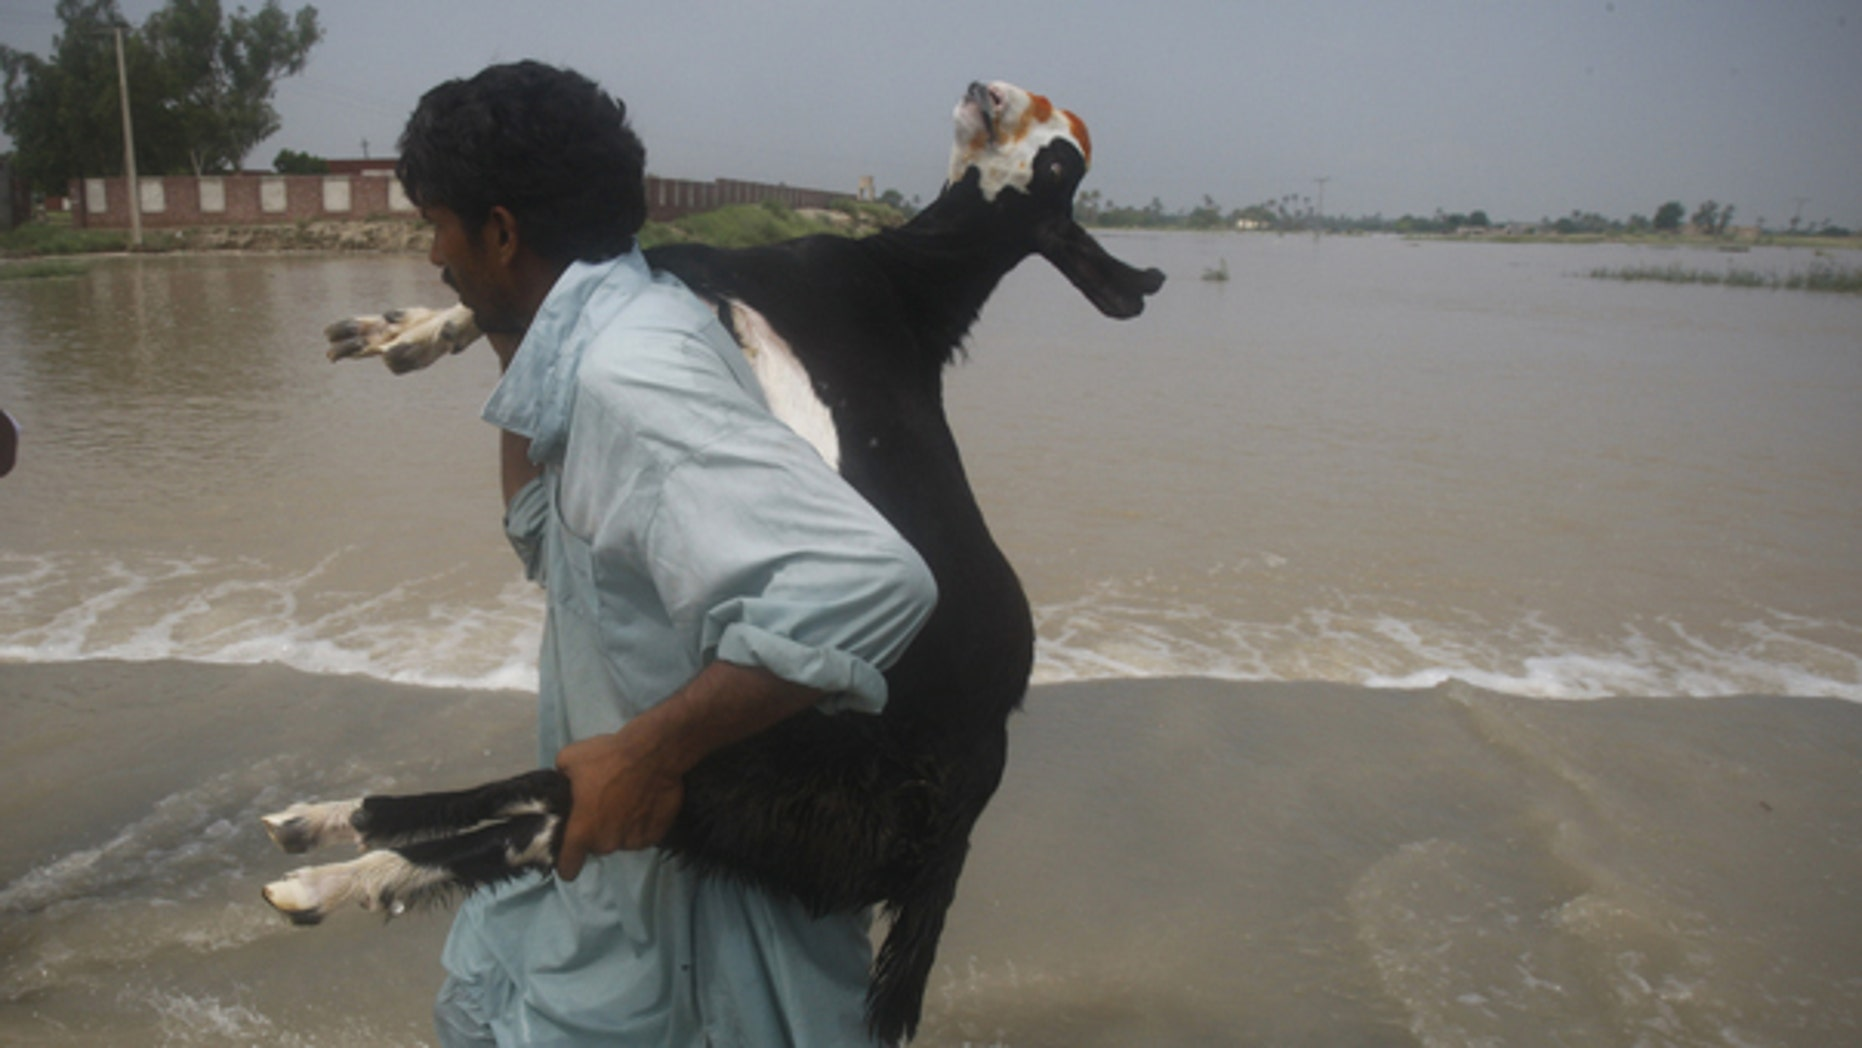 Aug. 6: A Pakistani villager carries a goat fleeing village in Mehmud Kot near Multan in central Pakistan. Stormy weather grounded helicopters carrying emergency supplies to Pakistan's flood-ravaged northwest Friday as the worst monsoon rains in decades brought more destruction to a nation already reeling from Islamist violence.